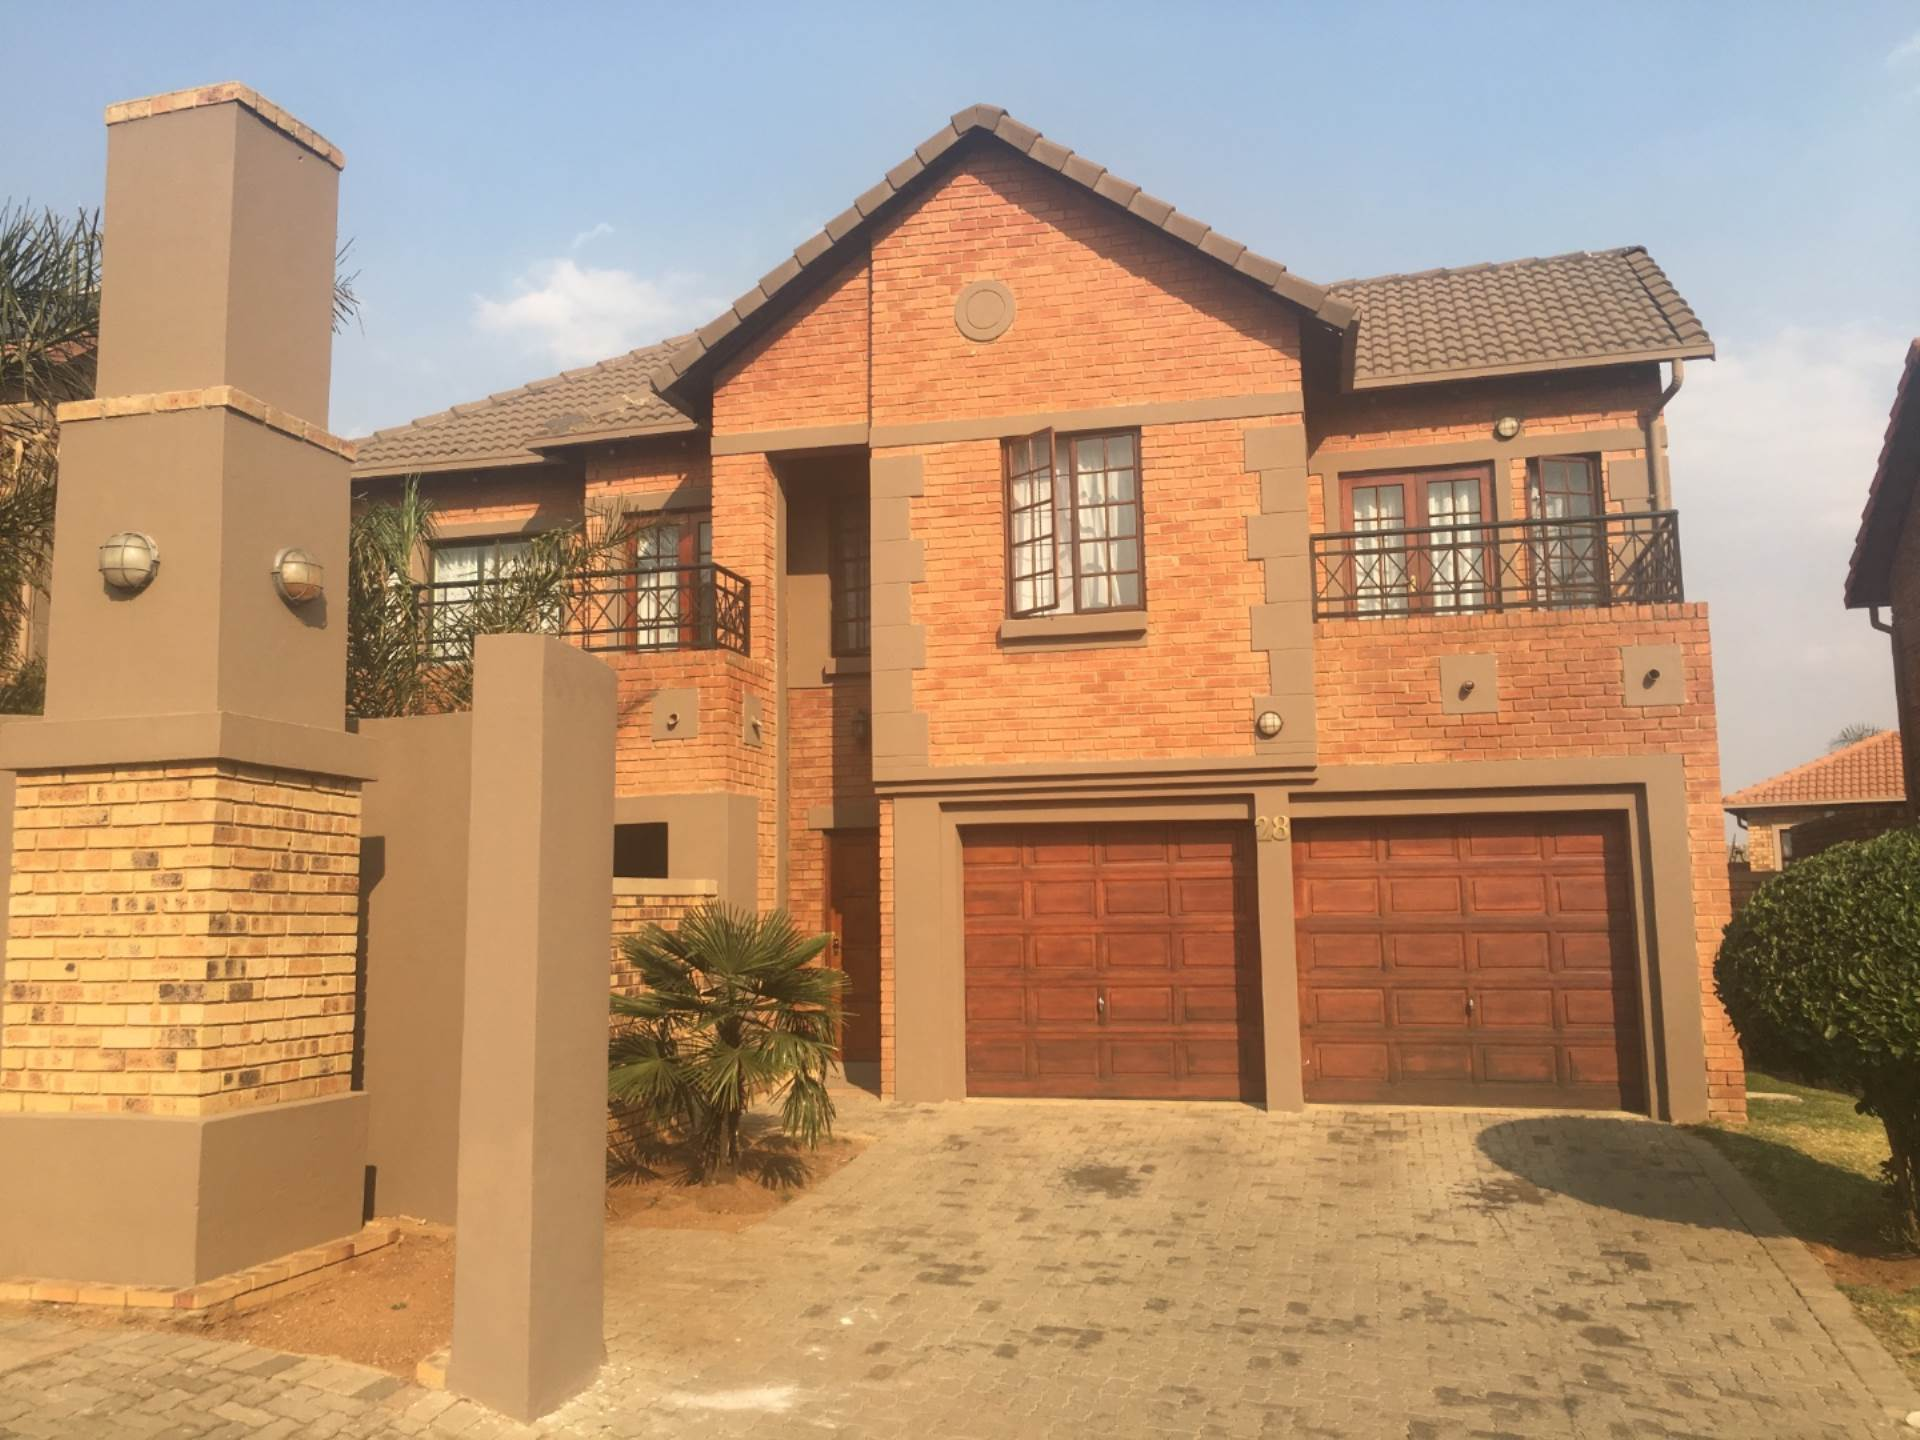 4 BedroomCluster To Rent In Meyersdal